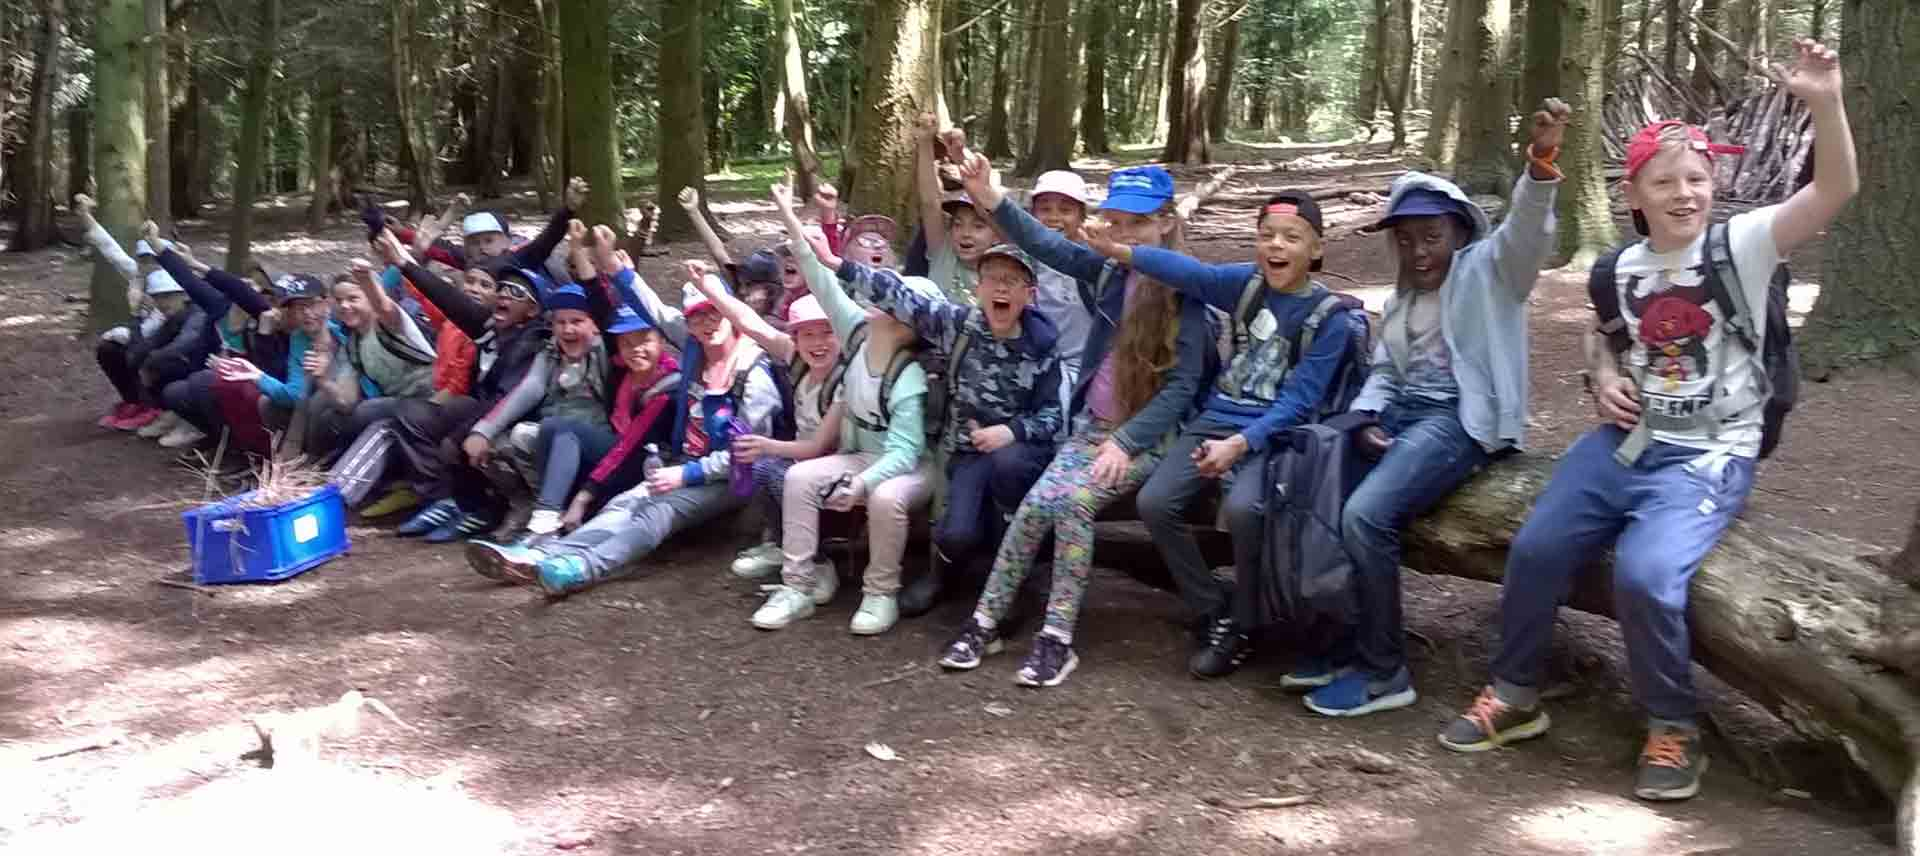 Children on a day visit to Everdon sitting on a log in the forest and cheering